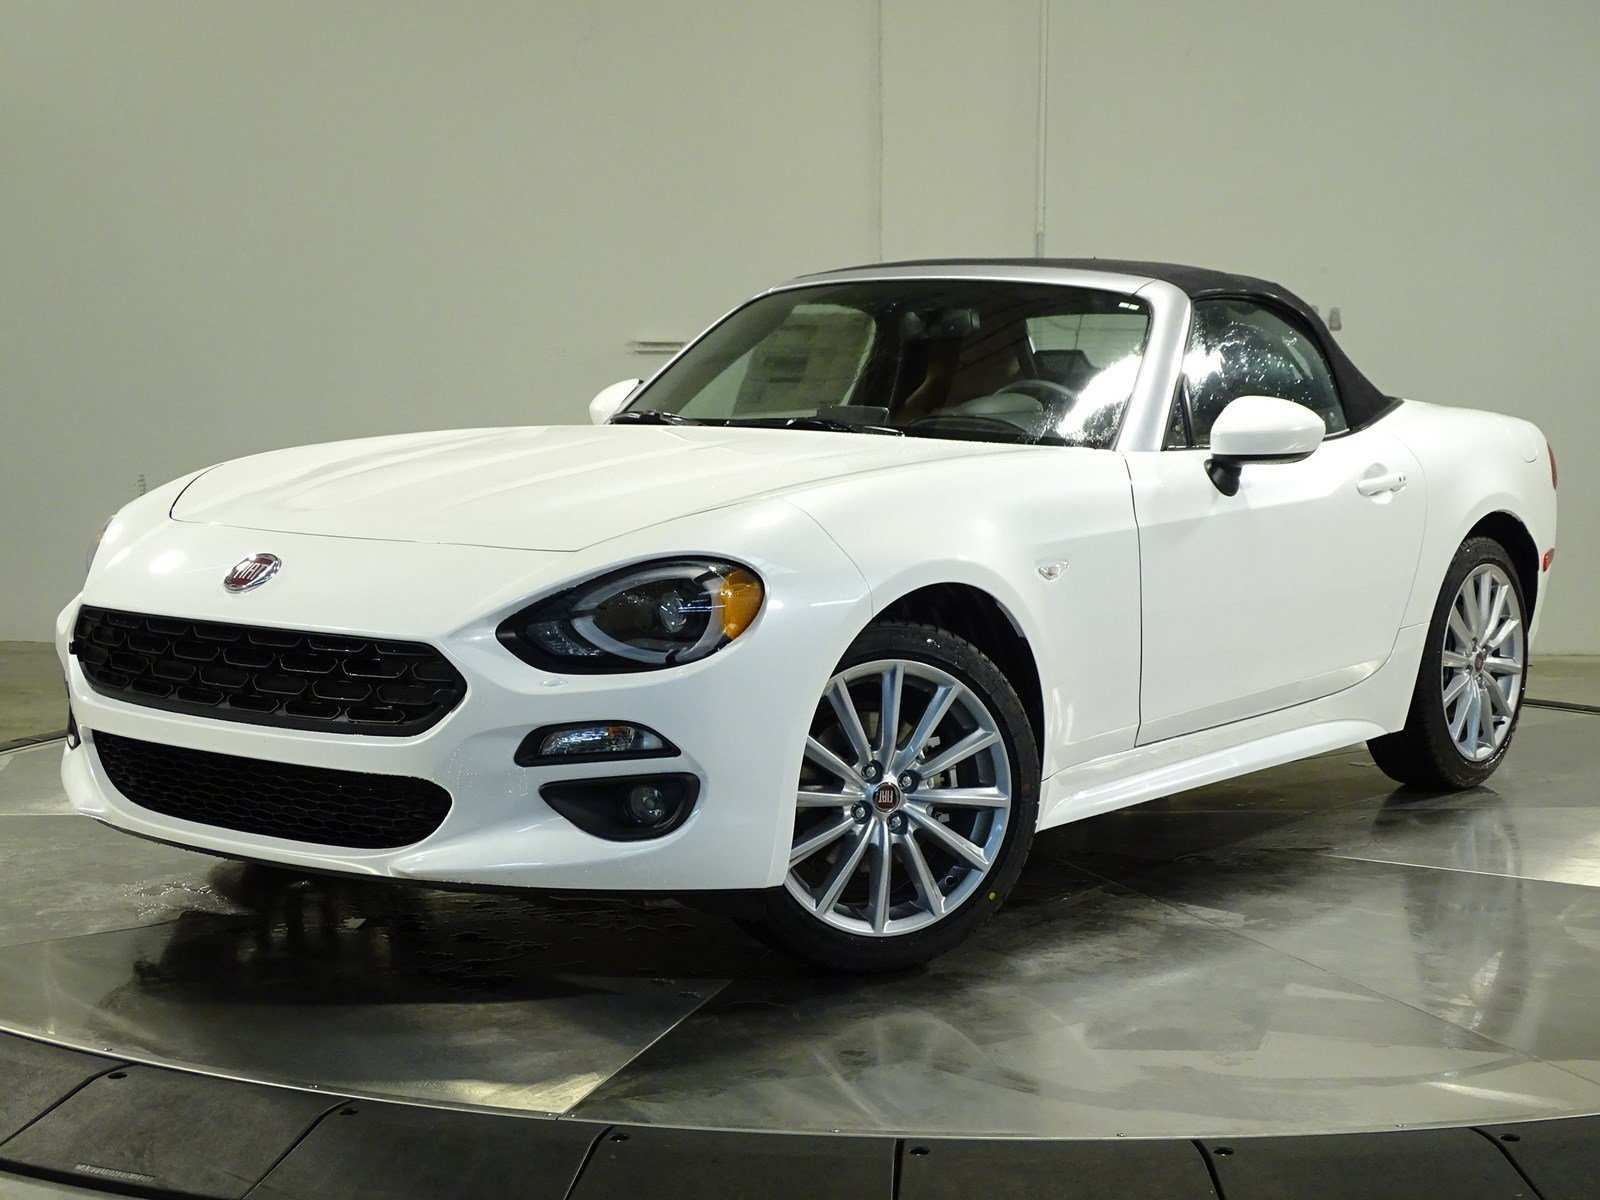 39 New 2019 Fiat 124 Spider Lusso Spesification with 2019 Fiat 124 Spider Lusso